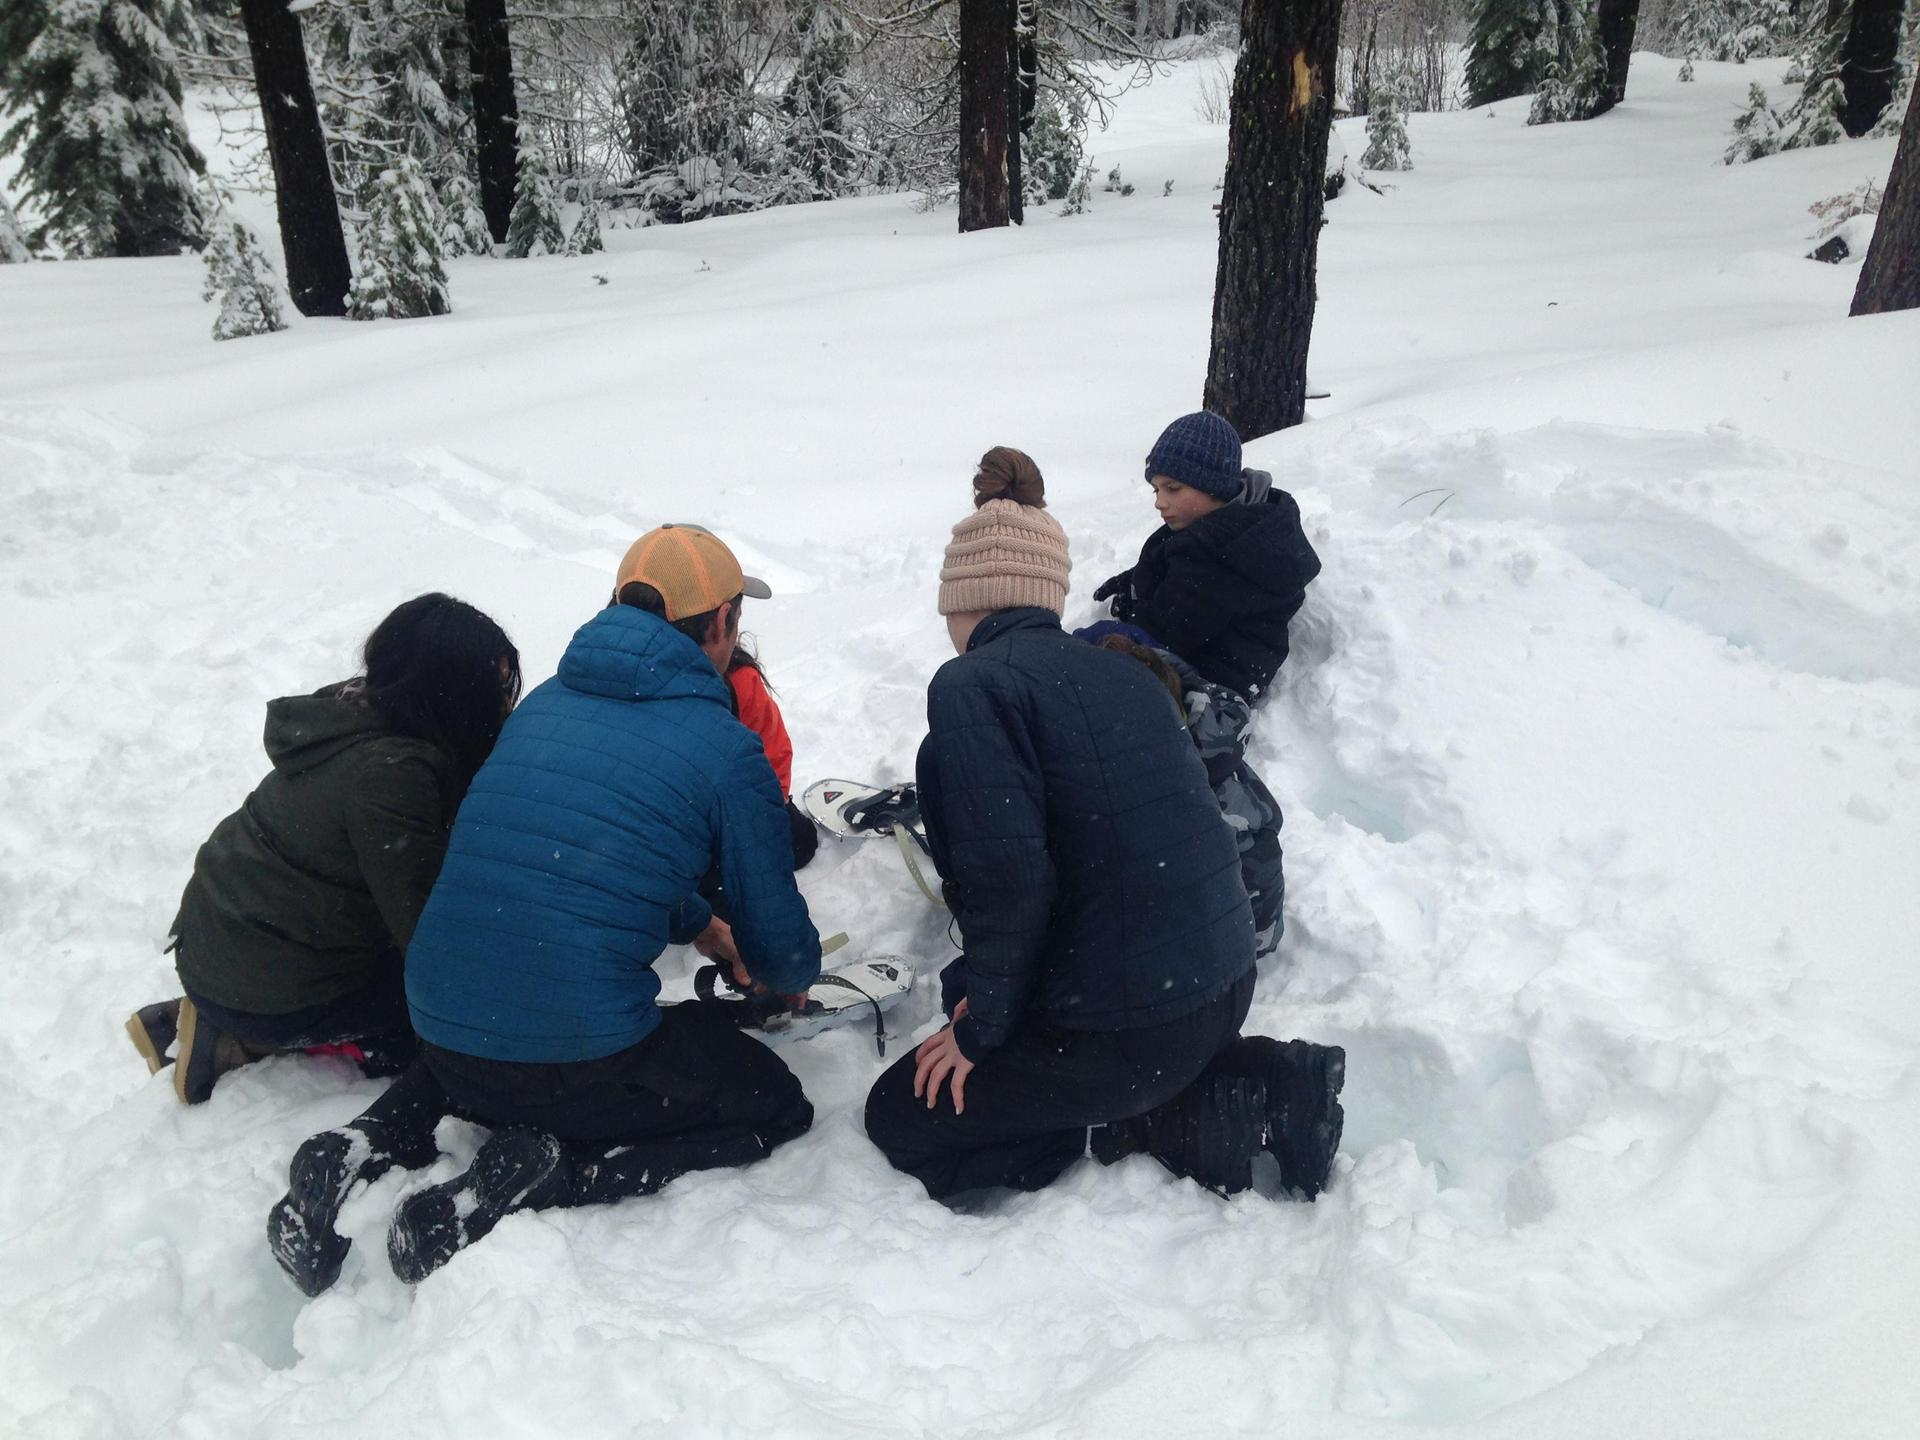 Kids putting on snowshoes